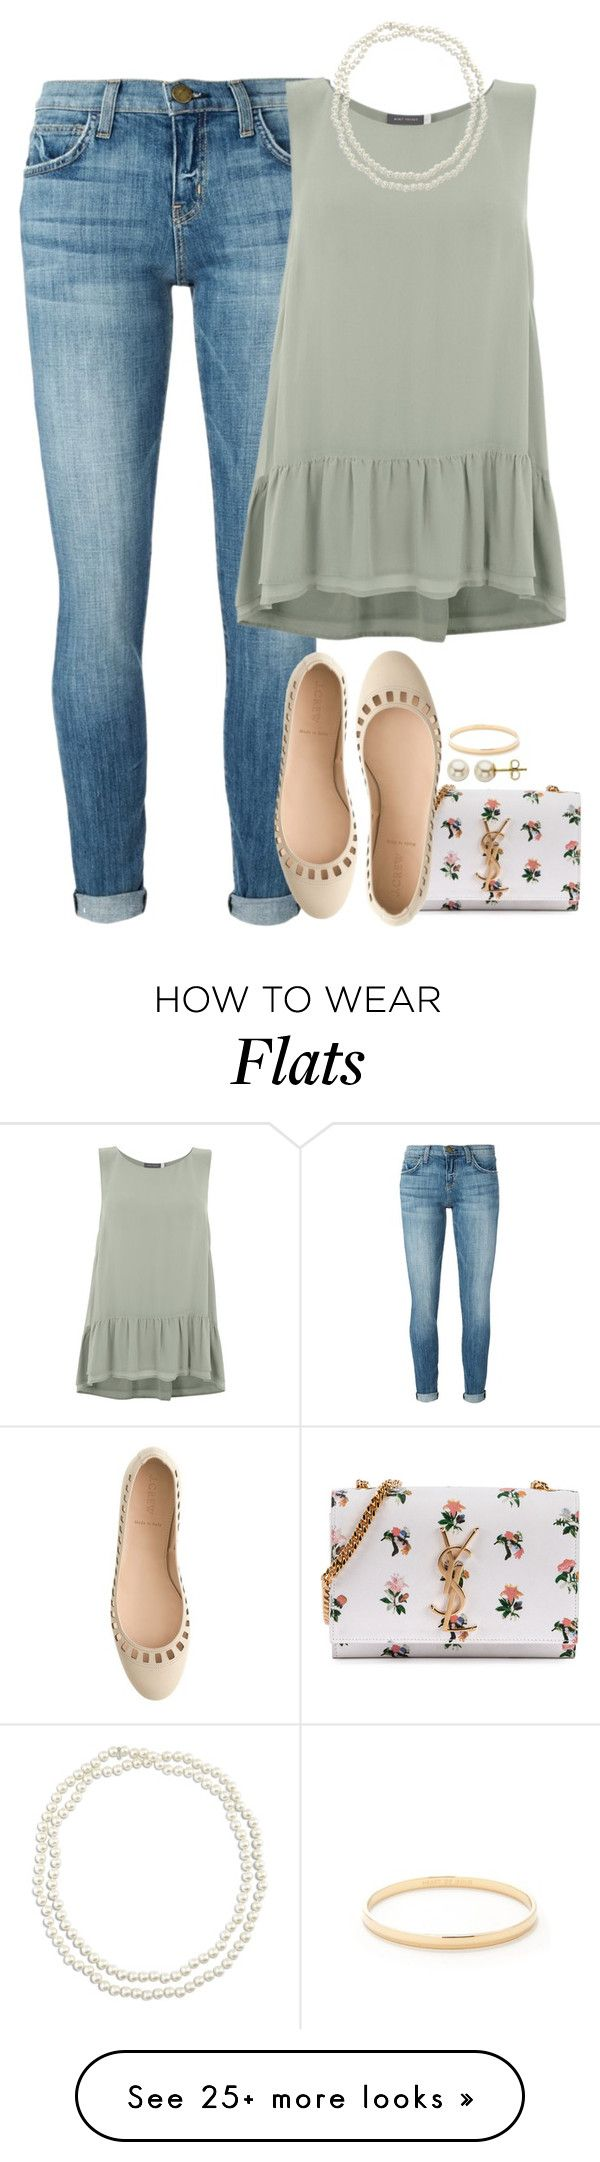 """""""Hello. It's me."""" by meljordrum on Polyvore featuring Current/Elliott, Mint Velvet, Yves Saint Laurent, Chico's, Kate Spade, J.Crew and Lord & Taylor"""